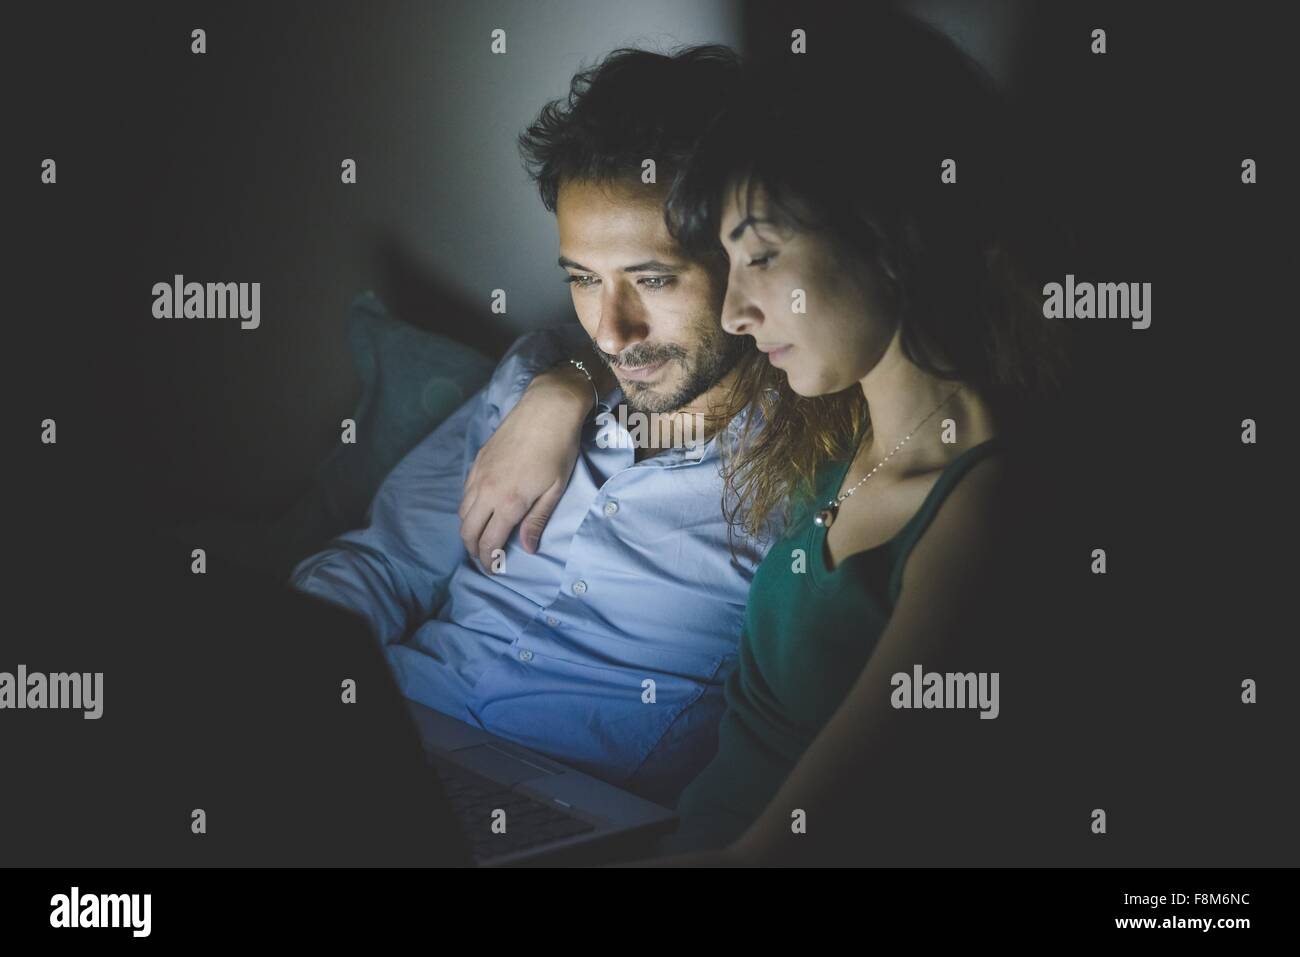 Young woman sitting with arm around young man illuminated by laptop computer screen - Stock Image